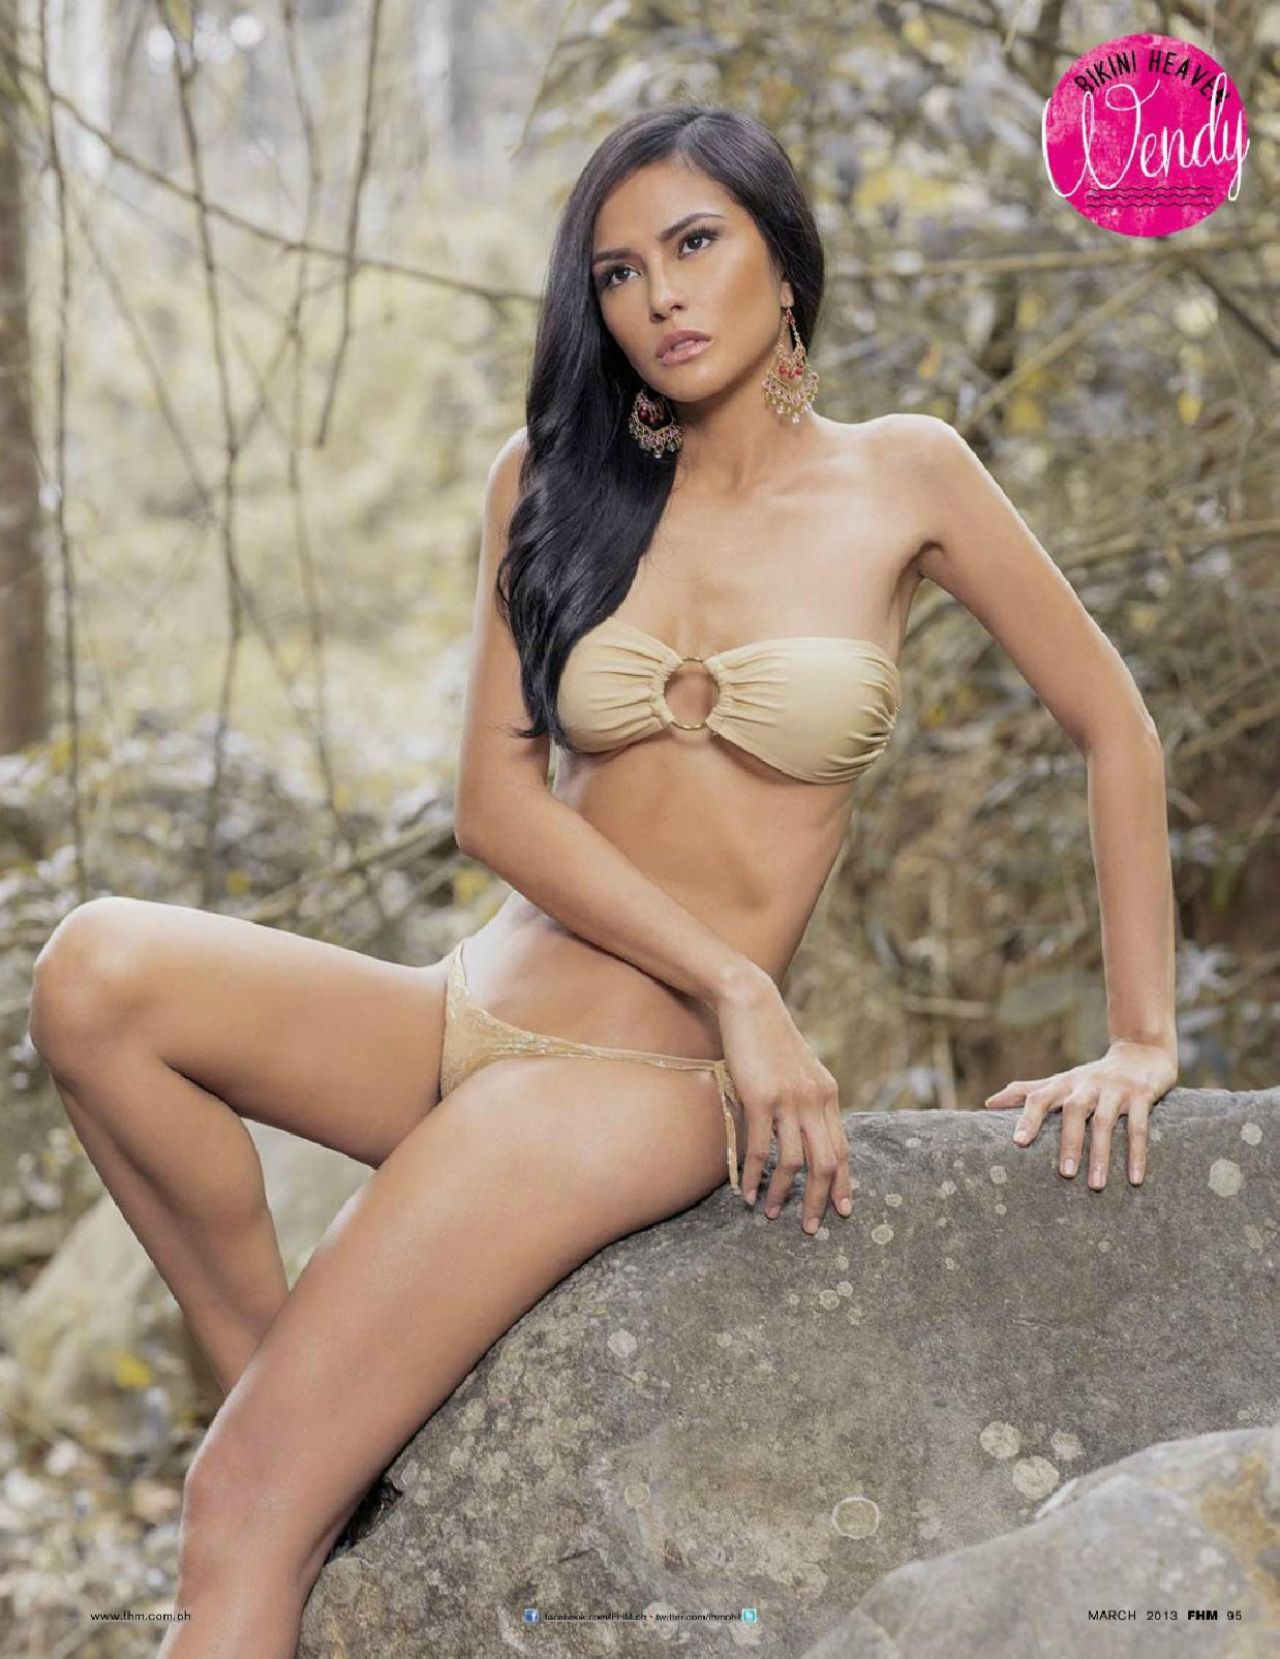 Wendy Valdez - FHM Magazine (Philippines) March 2013 Issue